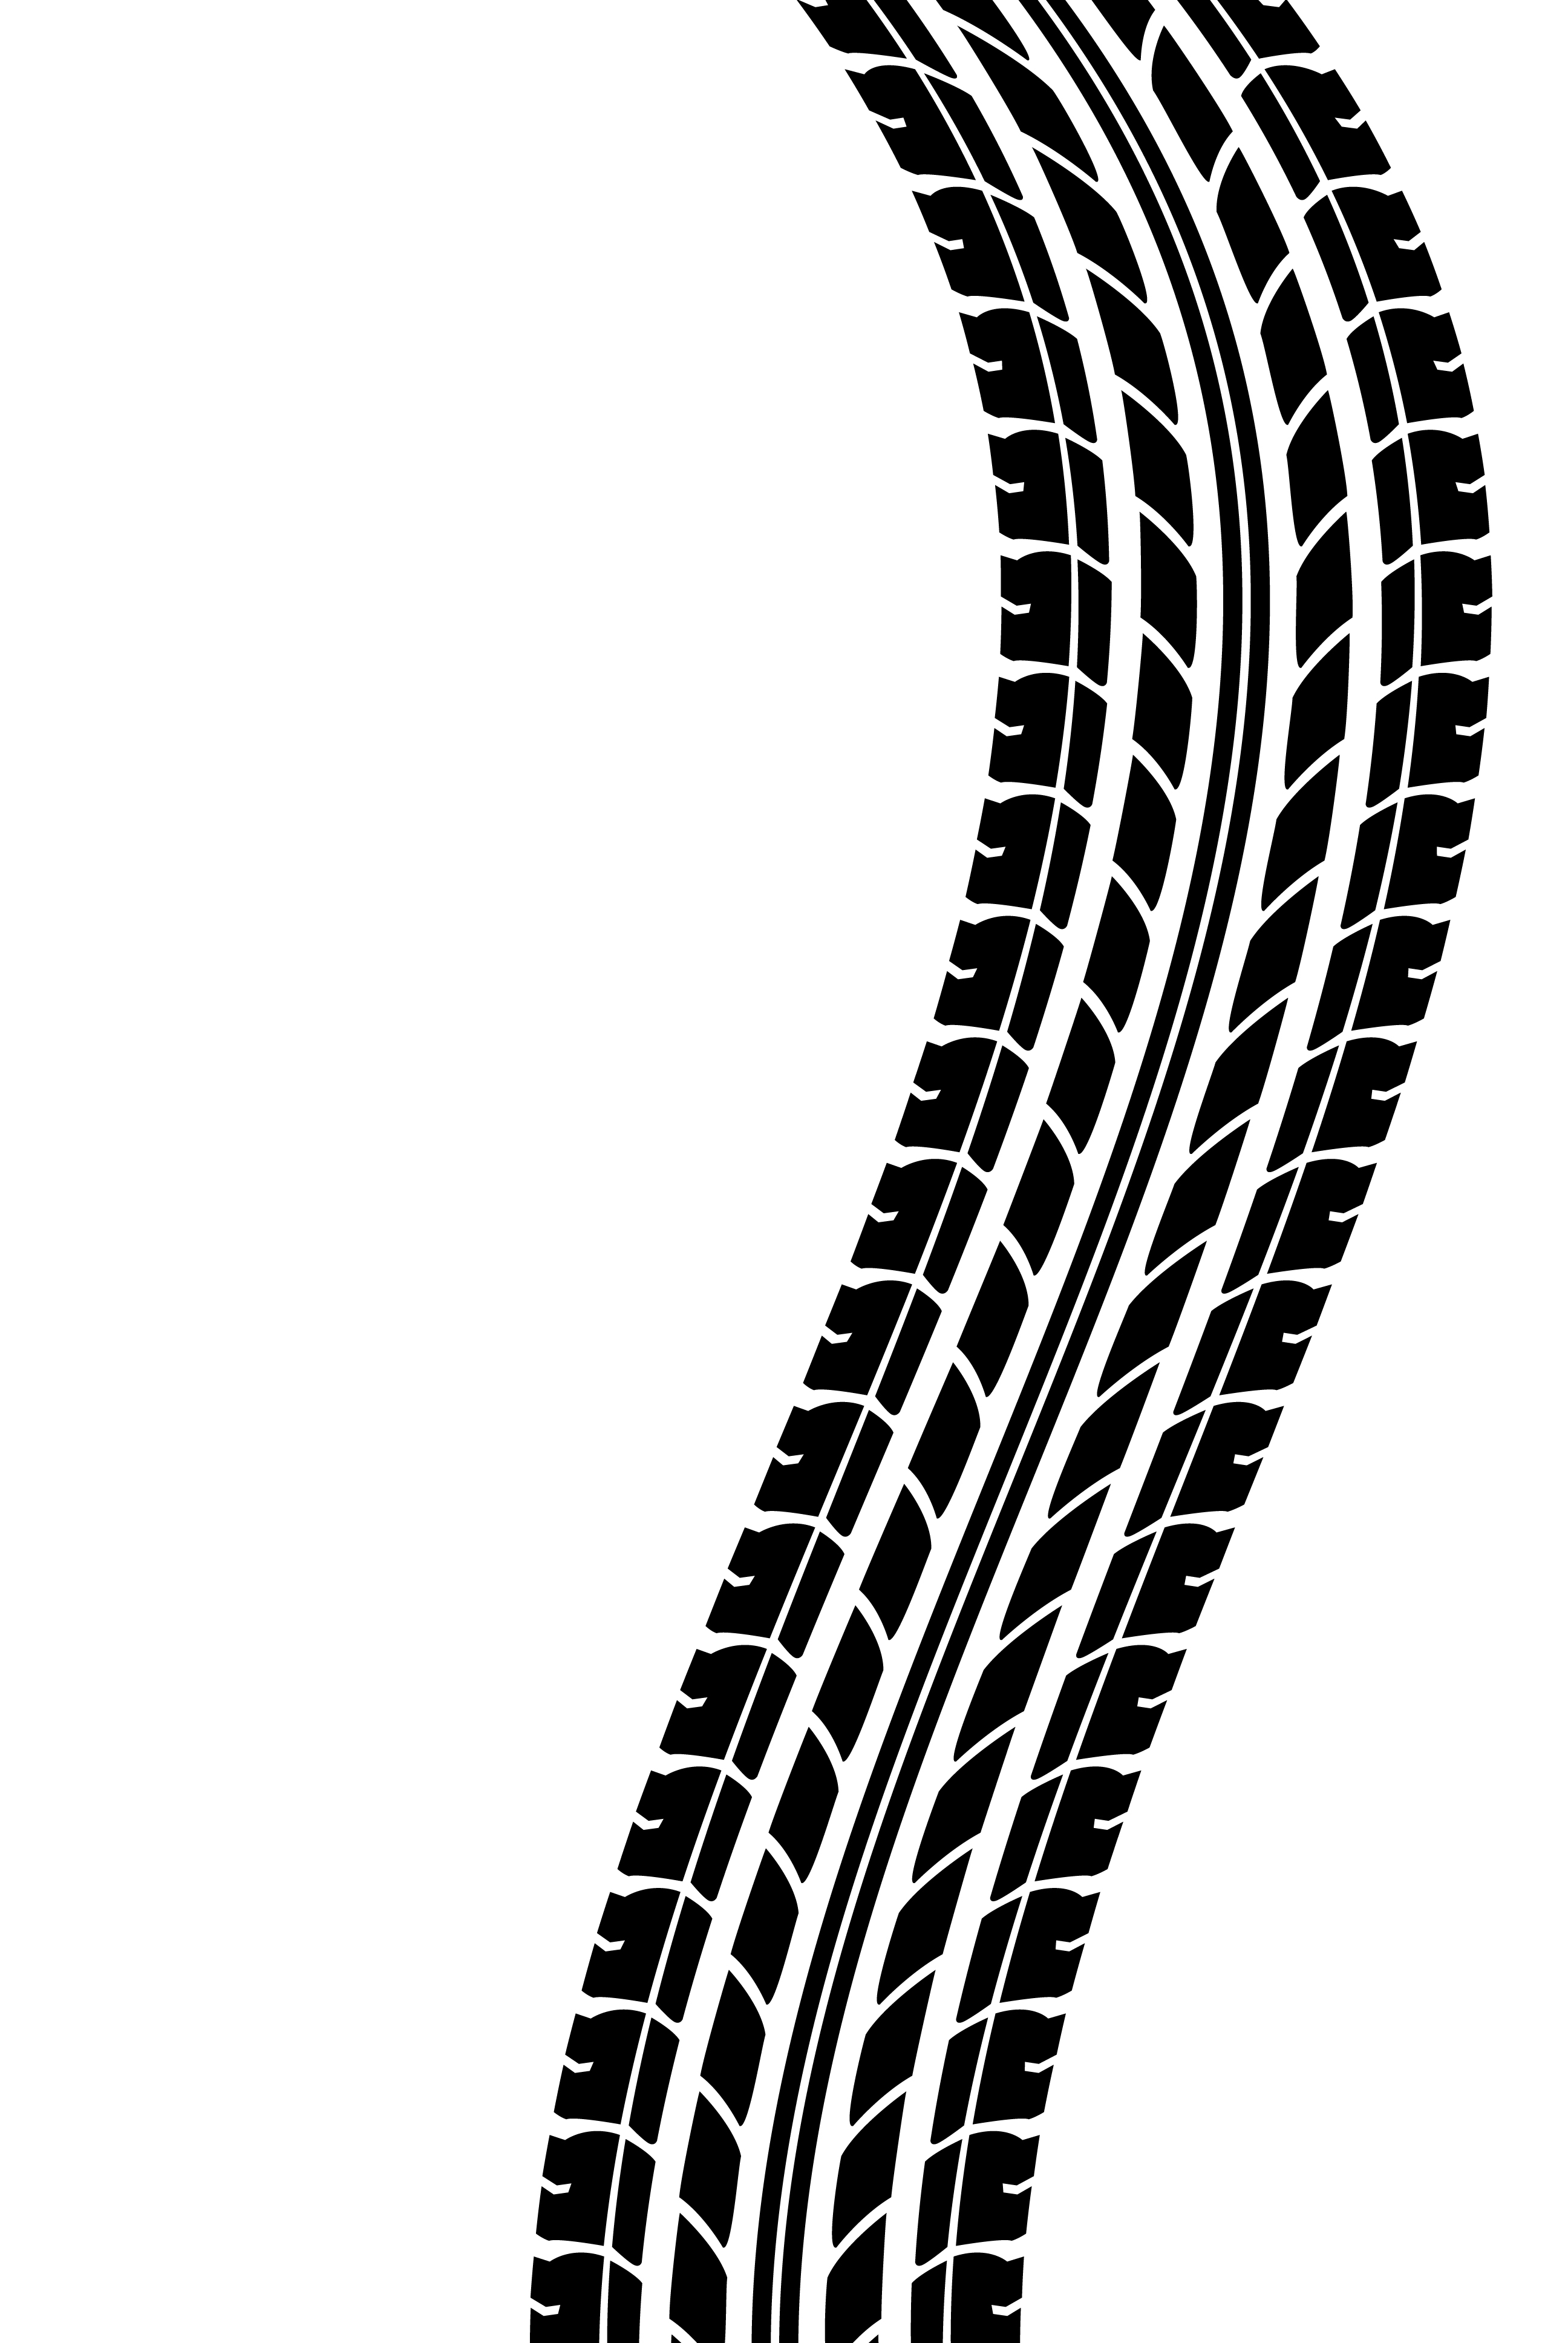 Free Tire Tracks Download Free Clip Art Free Clip Art On